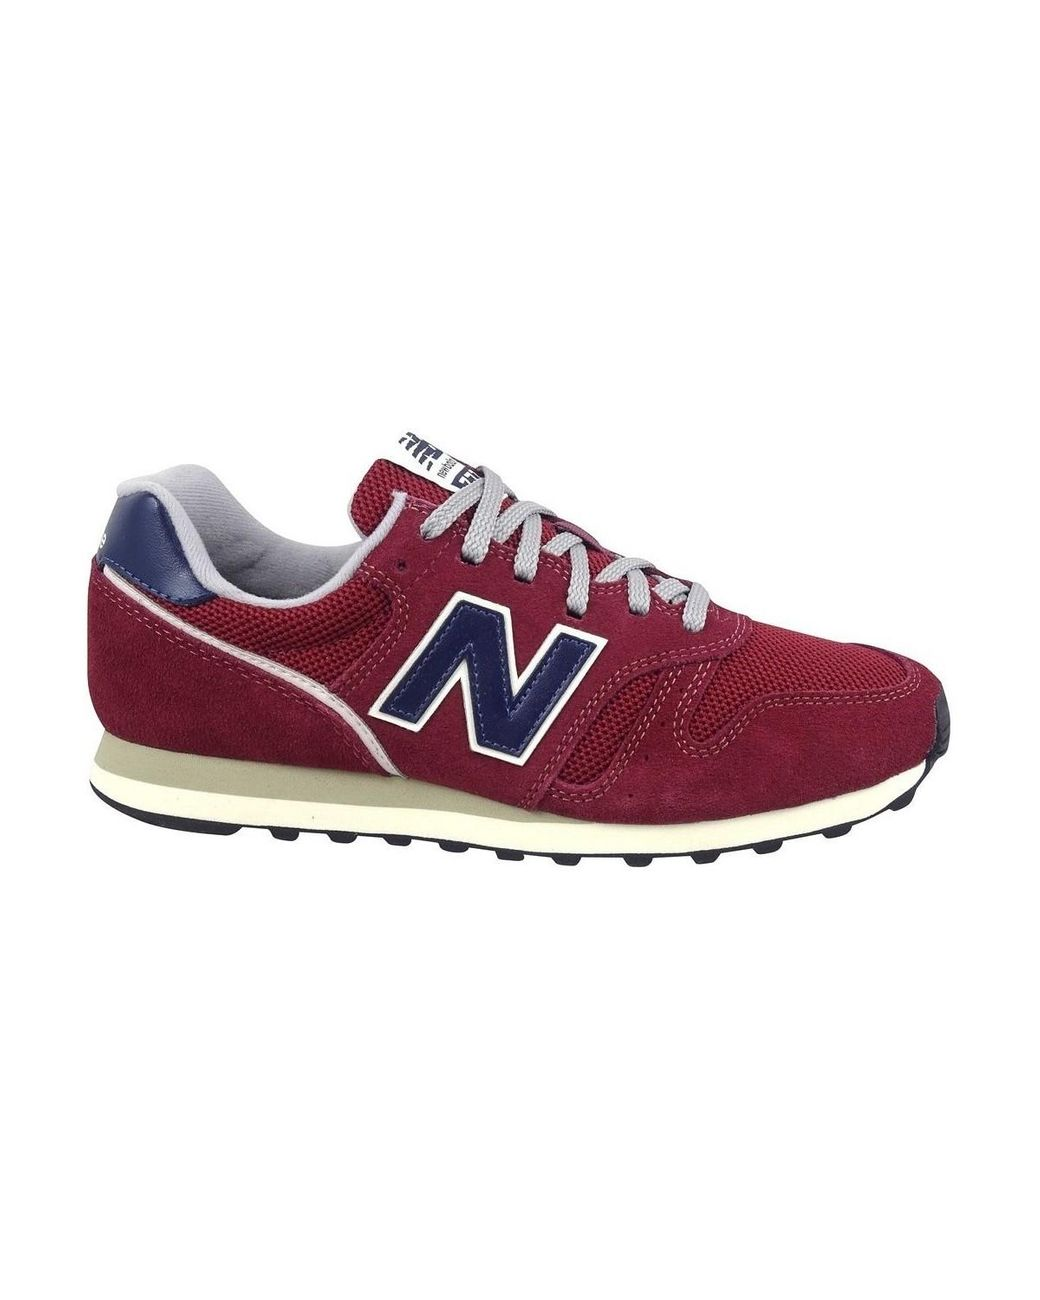 373 Chaussures New Balance pour homme - Lyst